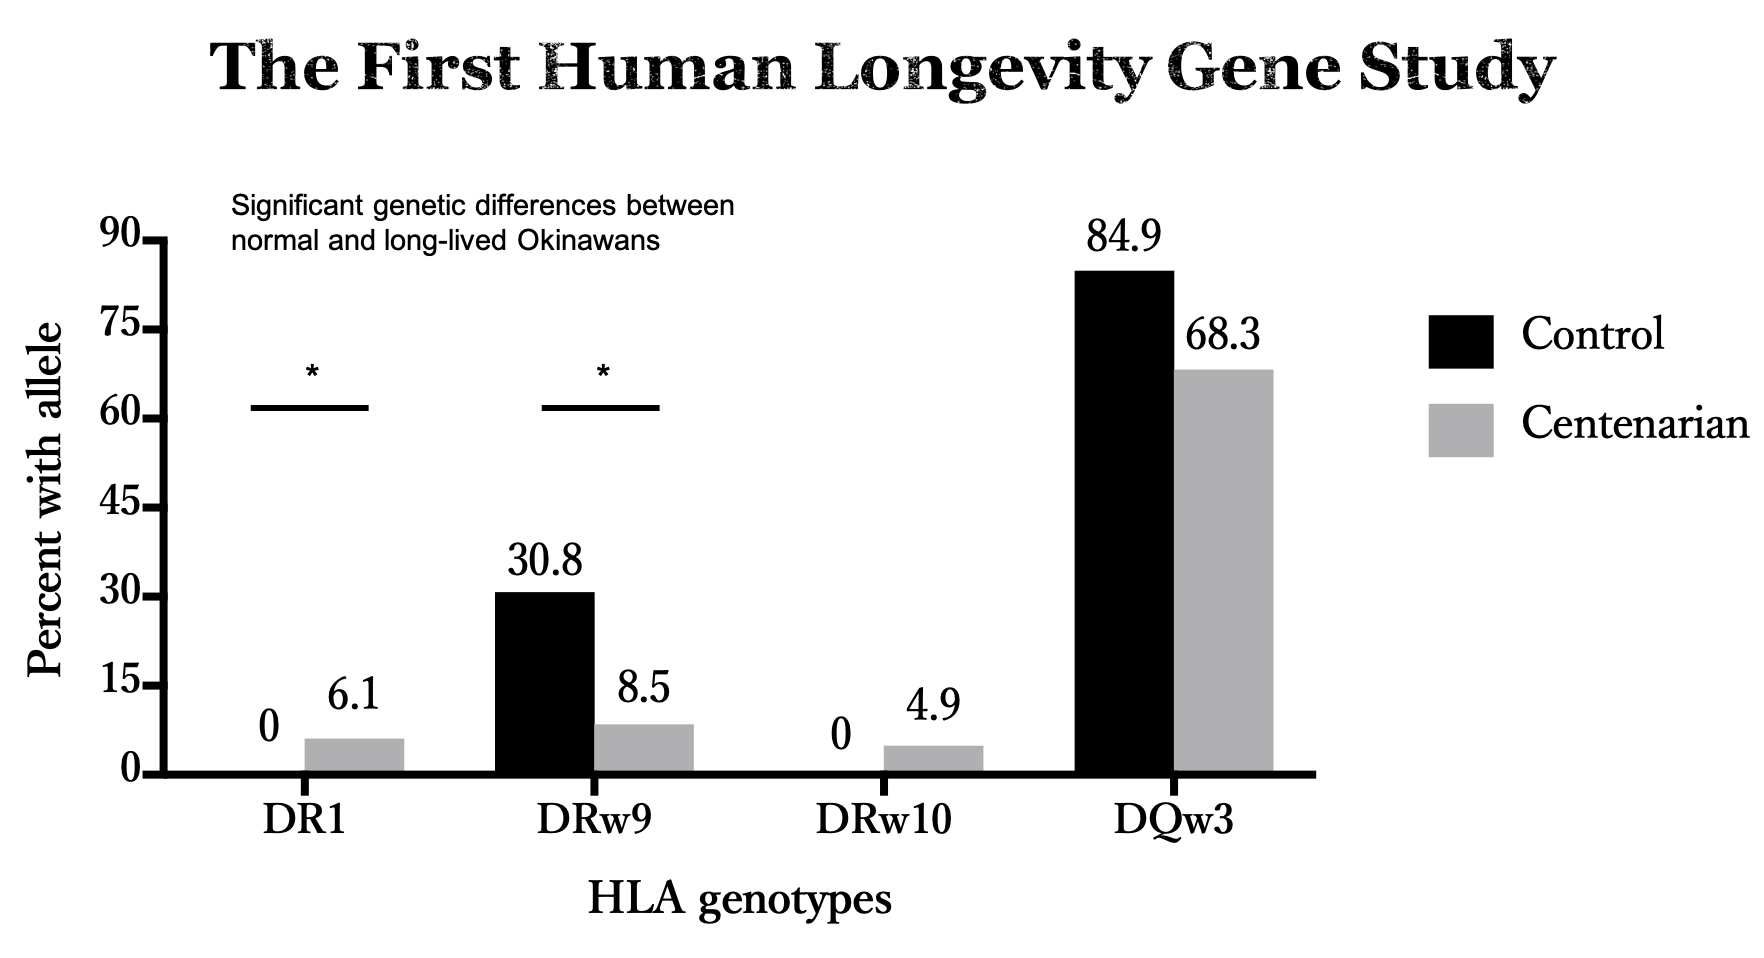 The OCS performed the first study of candidate human longevity genes and found that Okinawan in their 90s and centenarians had higher prevalence of anti-inflammatory type-2 human leukocyte antigen (HLA) alleles and a lower prevalence of pro-inflammatory alleles (Takata  et al . 1987)